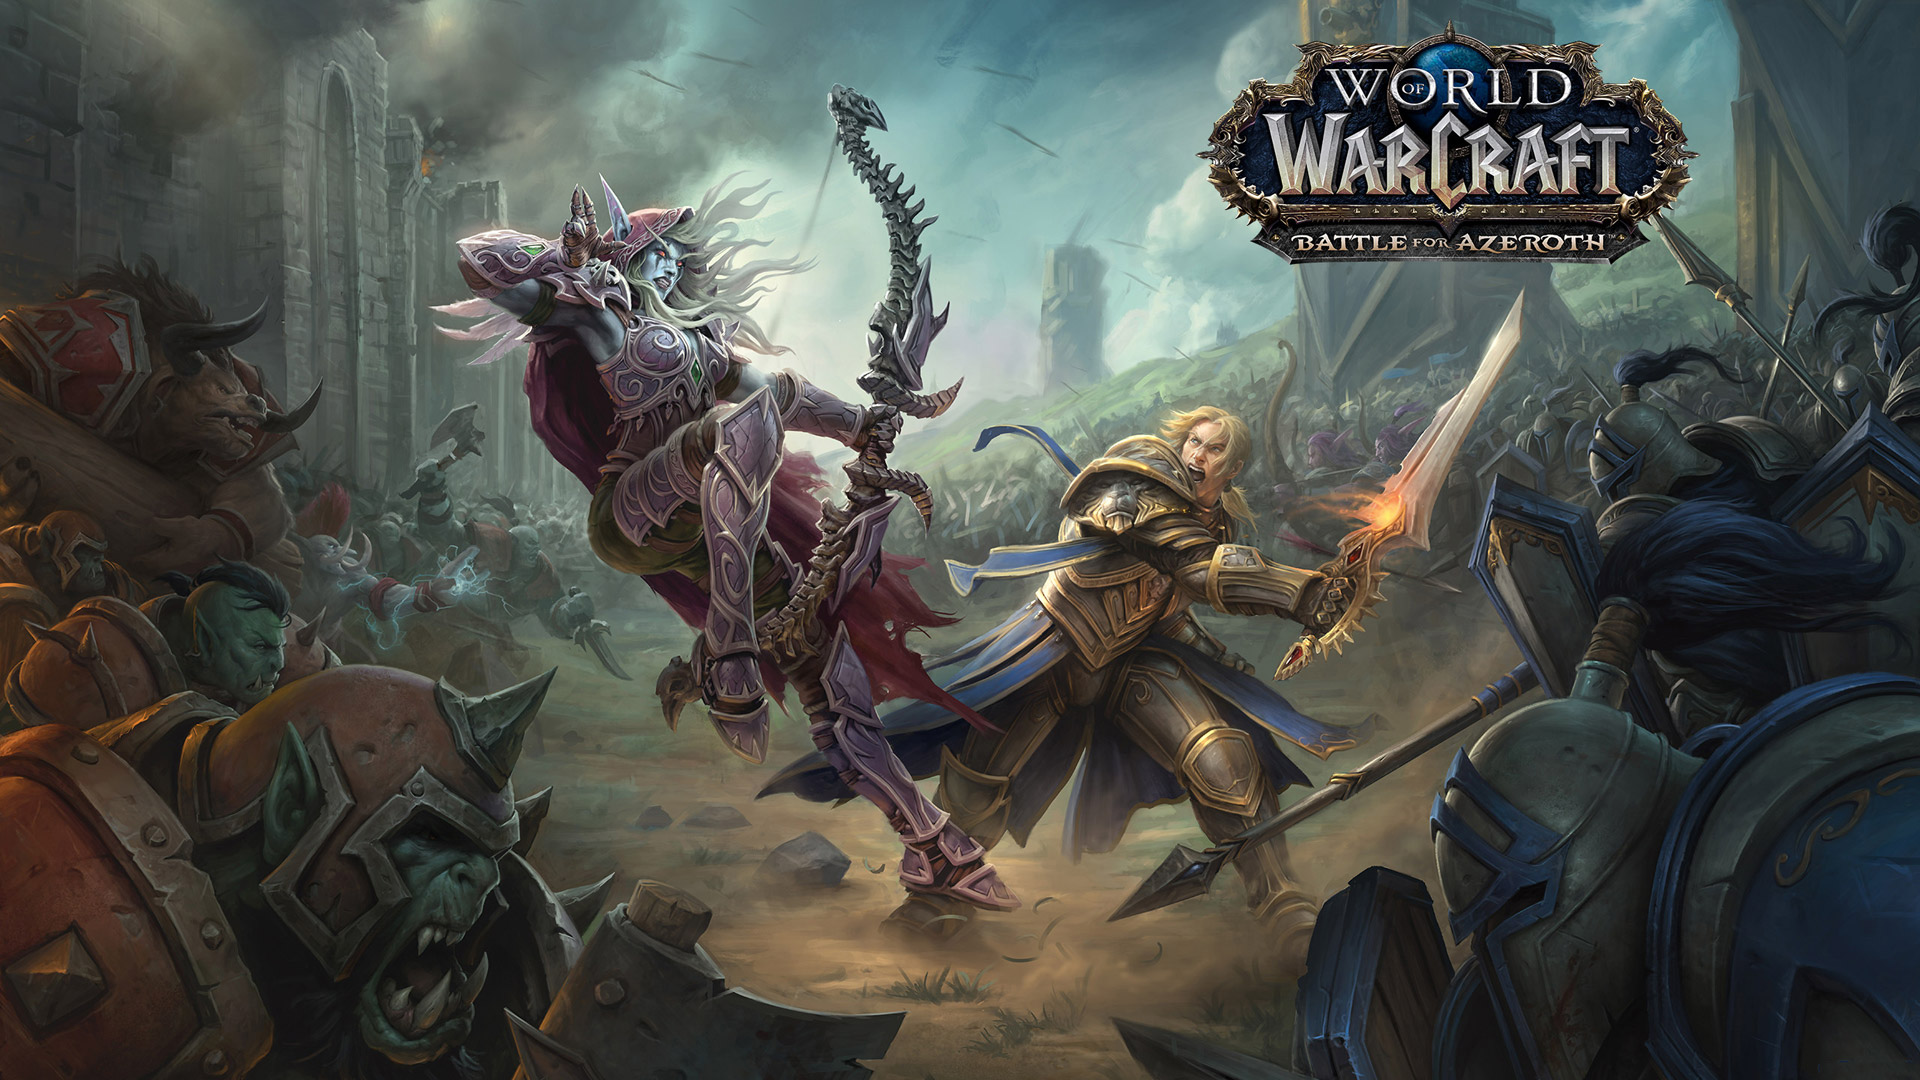 Free World of Warcraft Wallpaper in 1920x1080